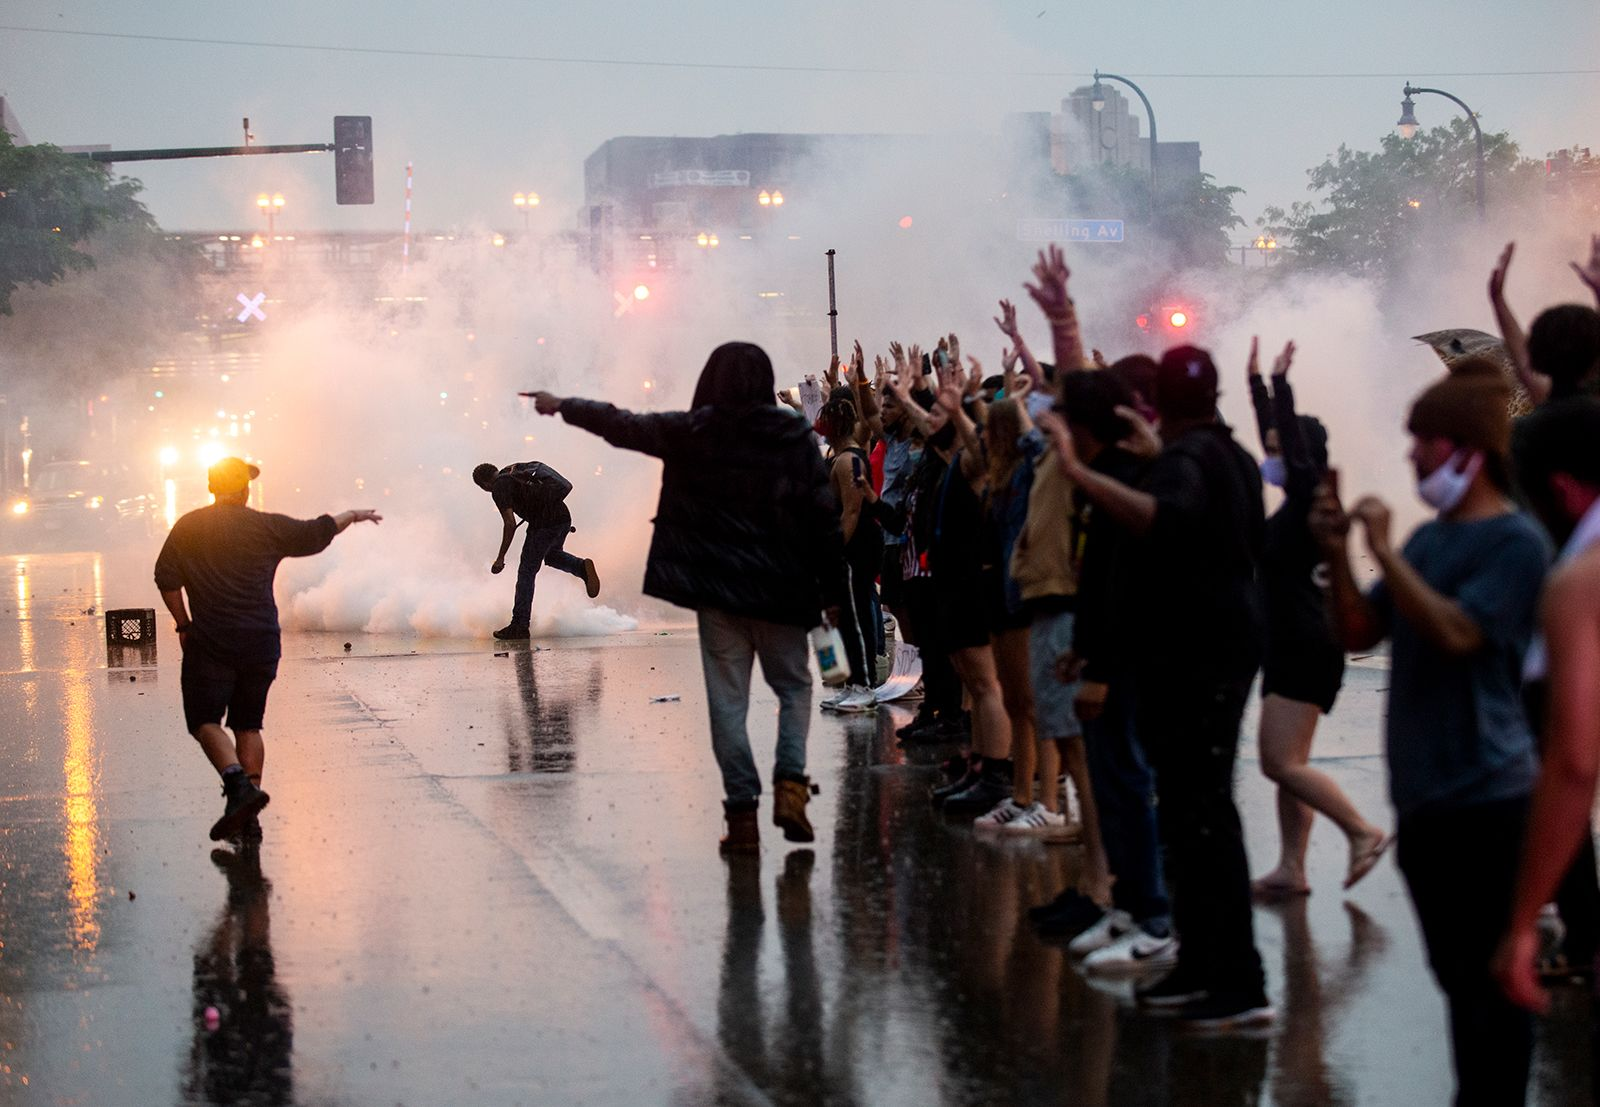 Tear gas is fired as protesters clash with police while demonstrating outside the 3rd Precinct.